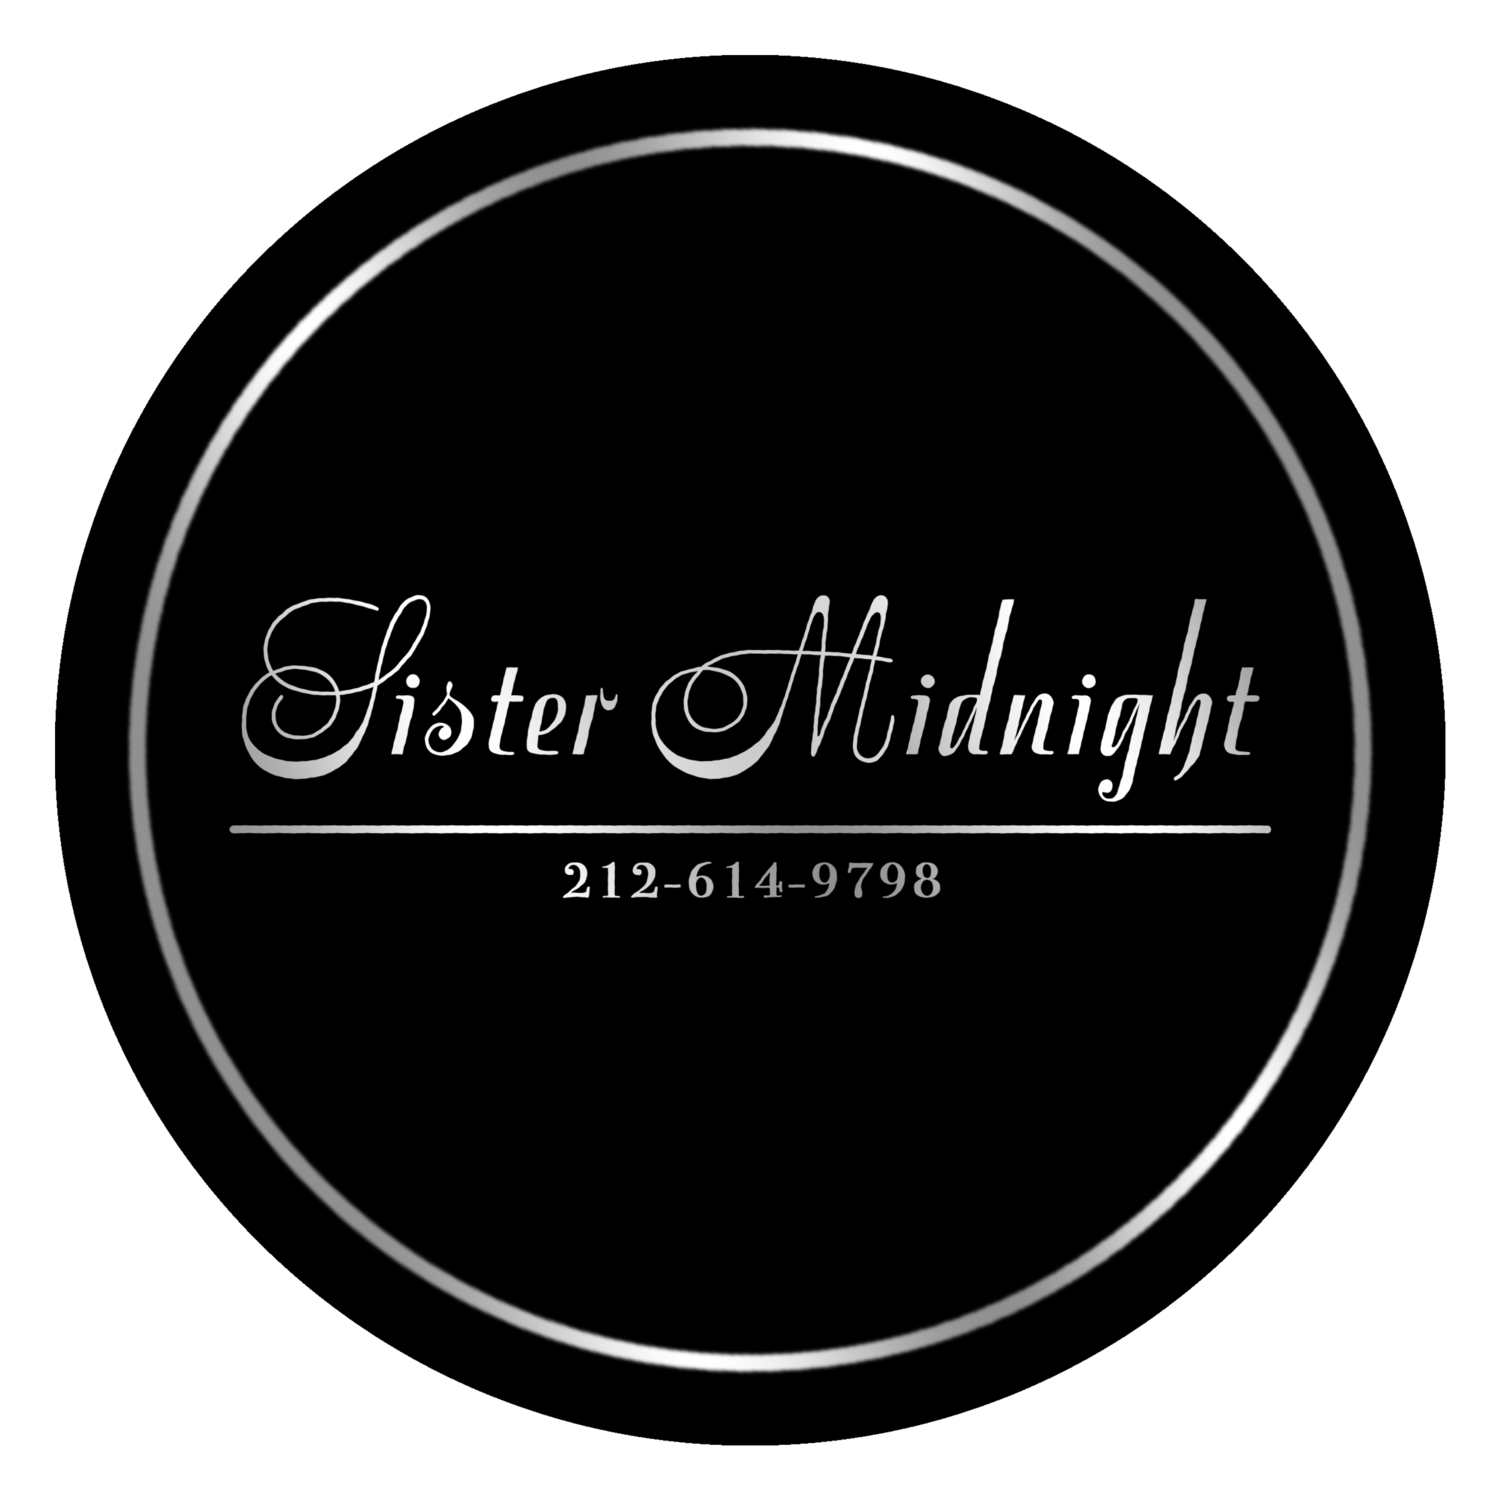 Sister Midnight - East Village , NY burgers | Places to go in NY ...